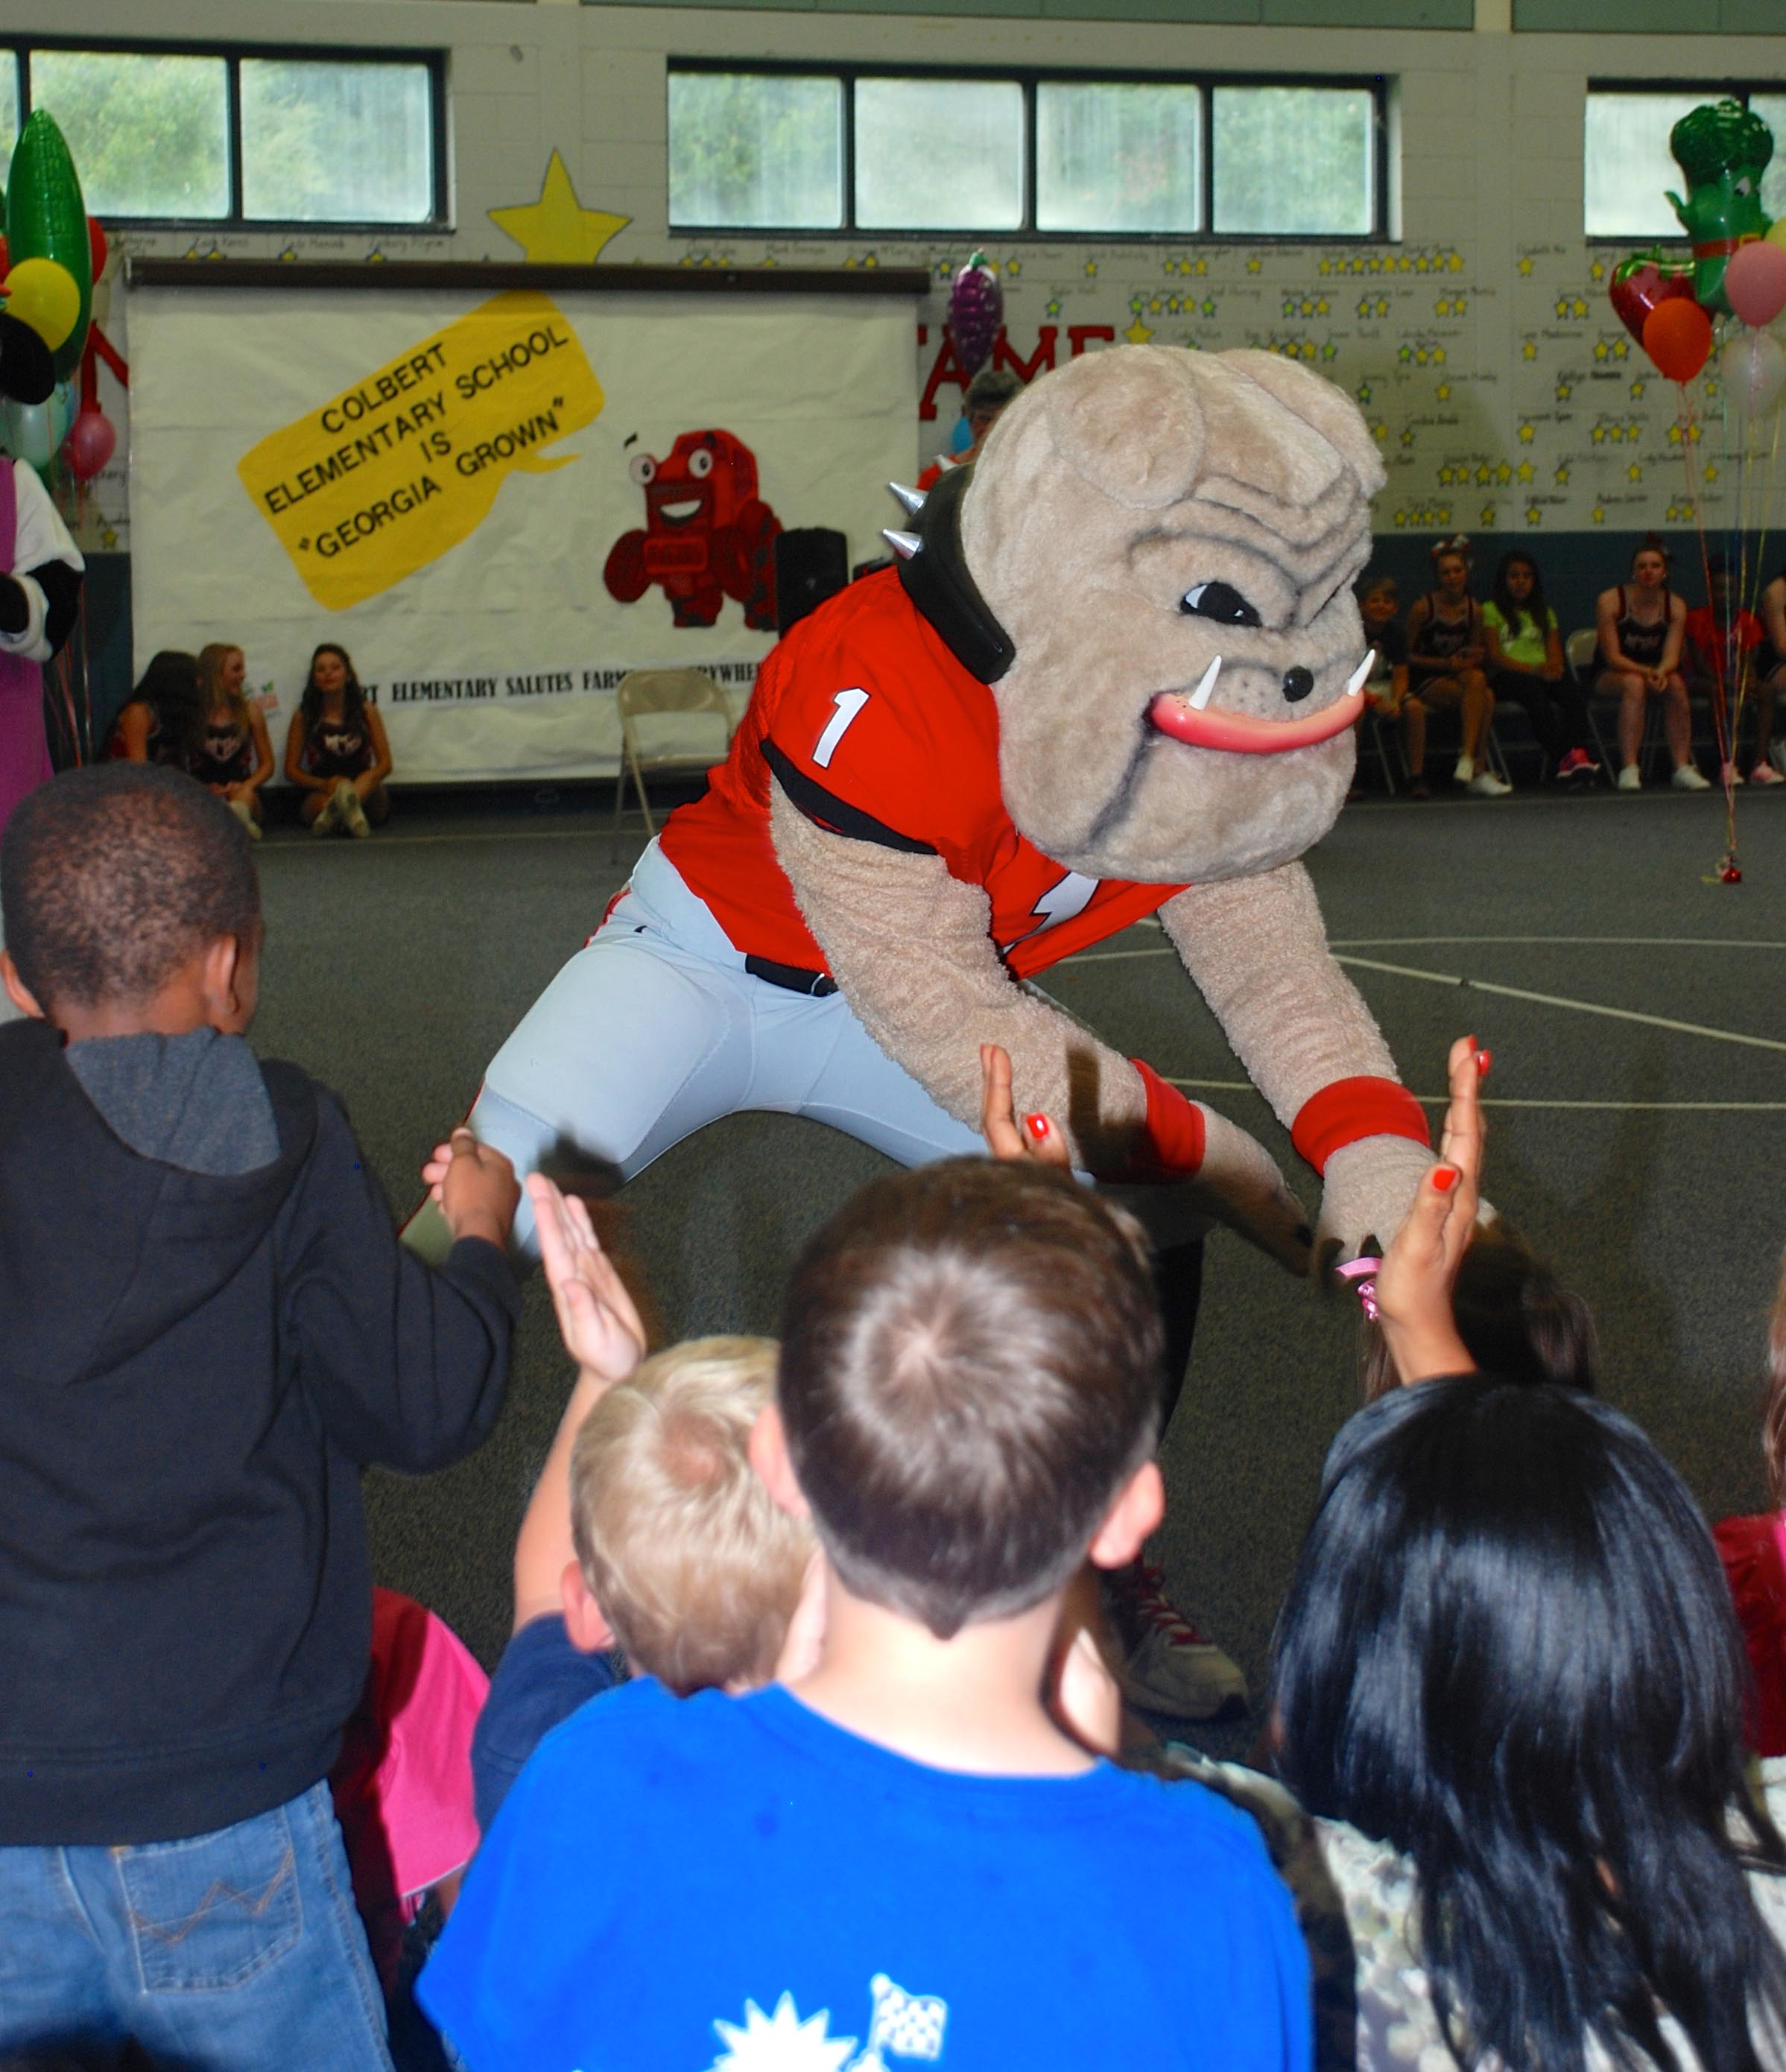 Hairy Dawg gets Colbert Elementary School Students riled up for agriculture at the kick-off assembly for the Feed my School For Week program.